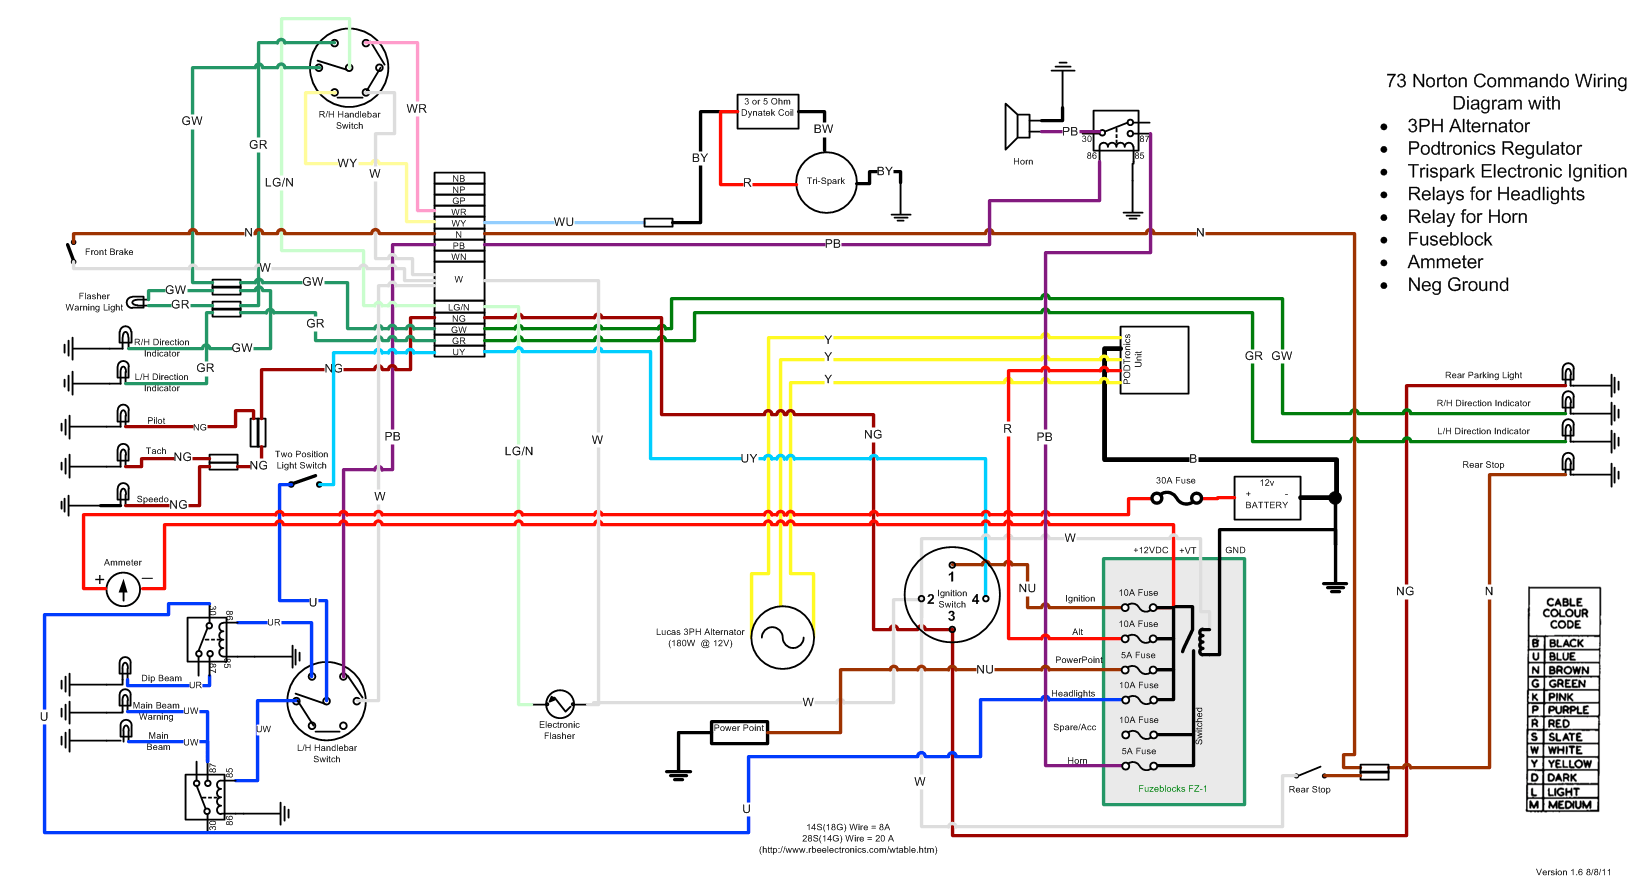 Visio Wiring Diagram Efcaviation Com Electrical Drawing Template Visio U2013 The Wiring Diagram 359